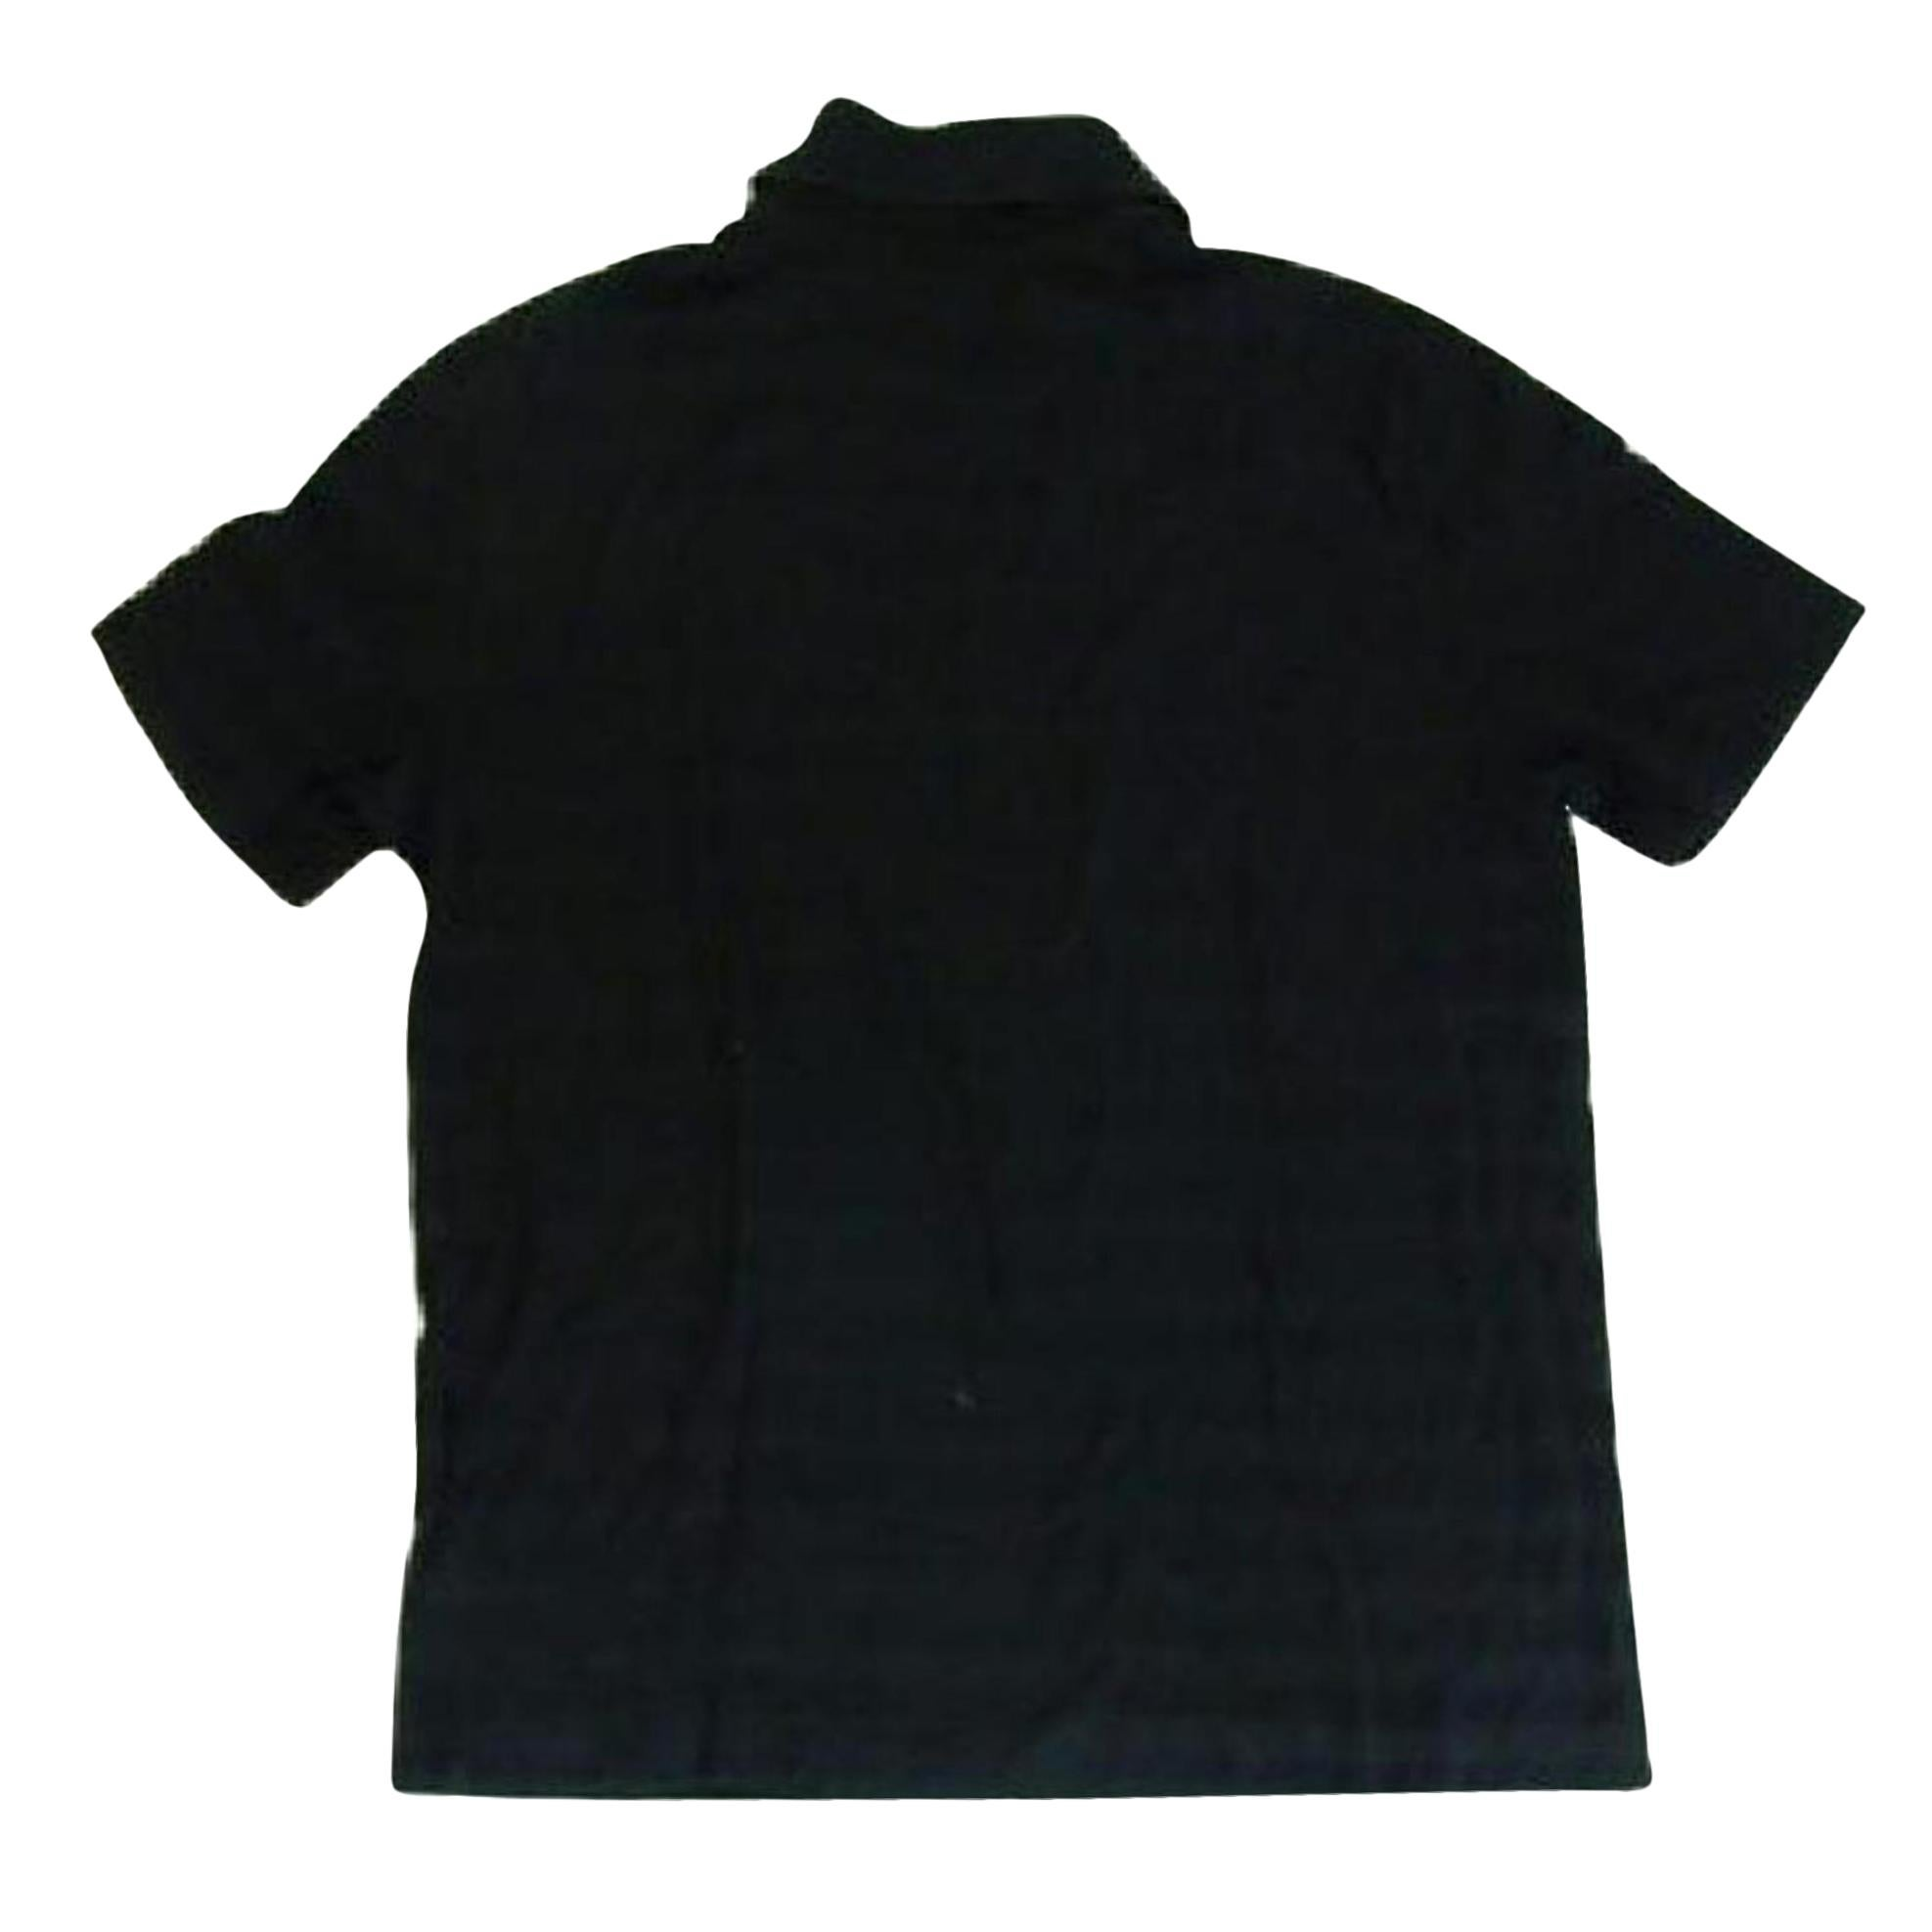 e773be2d Vintage Louis Vuitton Shirts - 21 For Sale at 1stdibs